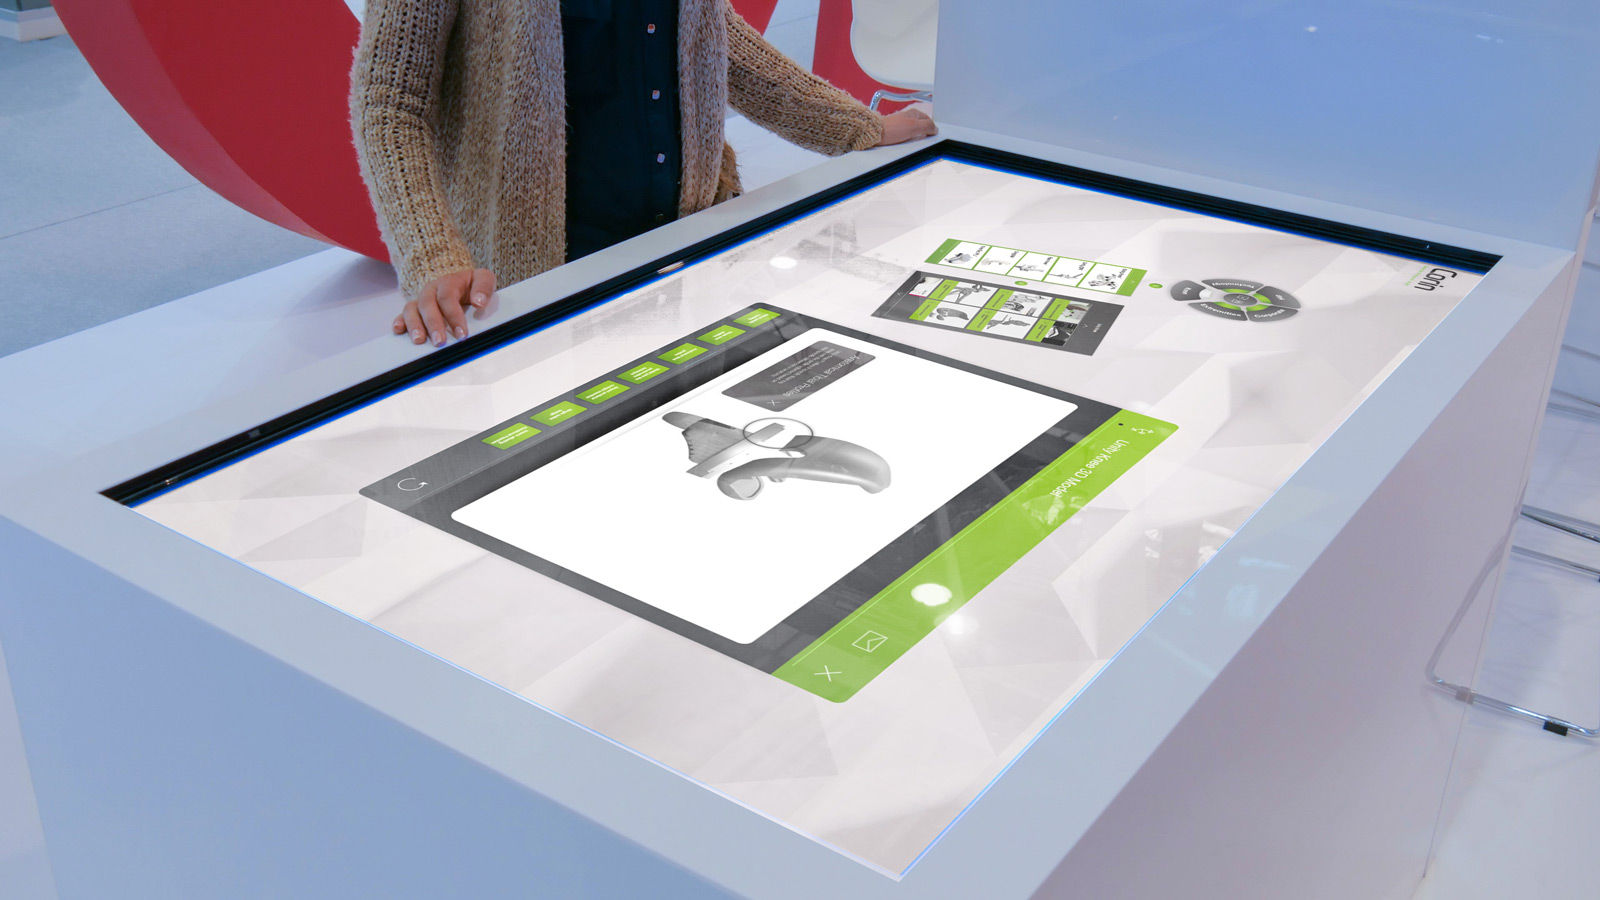 woman interacting with Corin interactive touchscreen software displayed on large white table